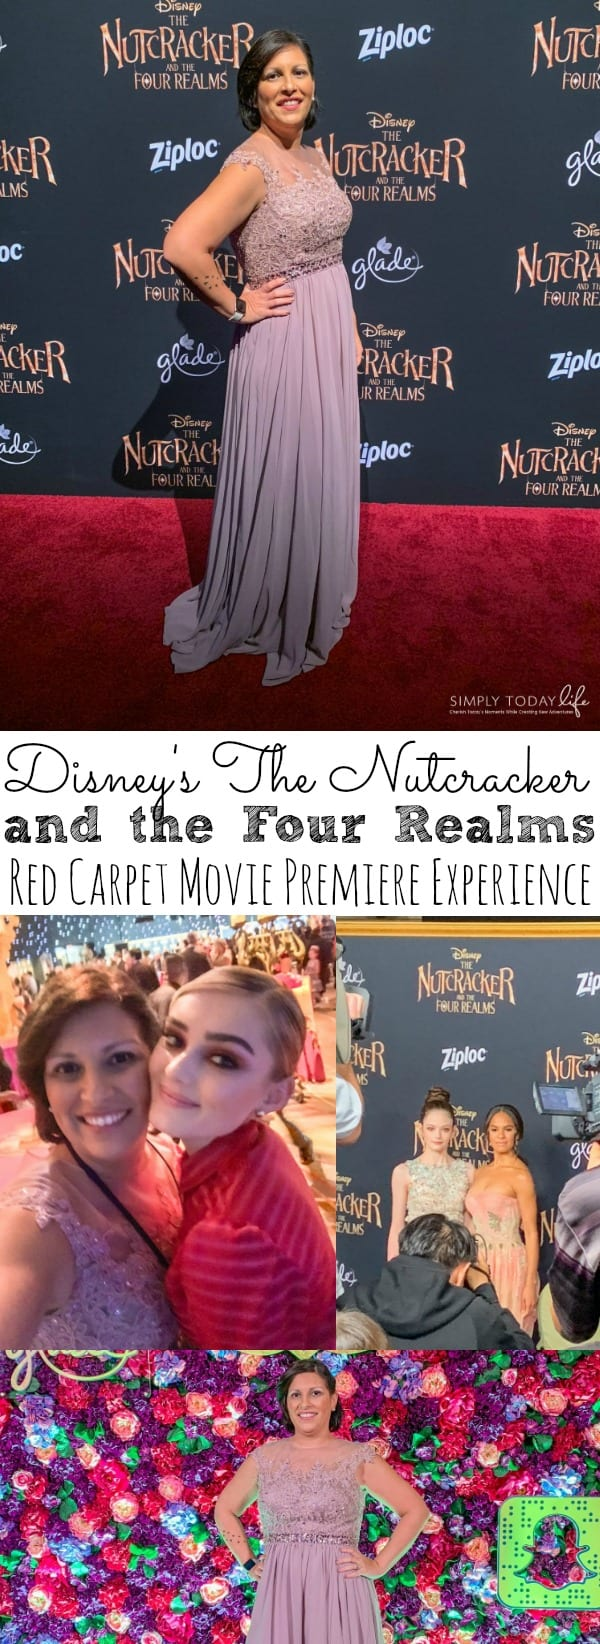 The Nutcracker and the Four Realms Red Carpet